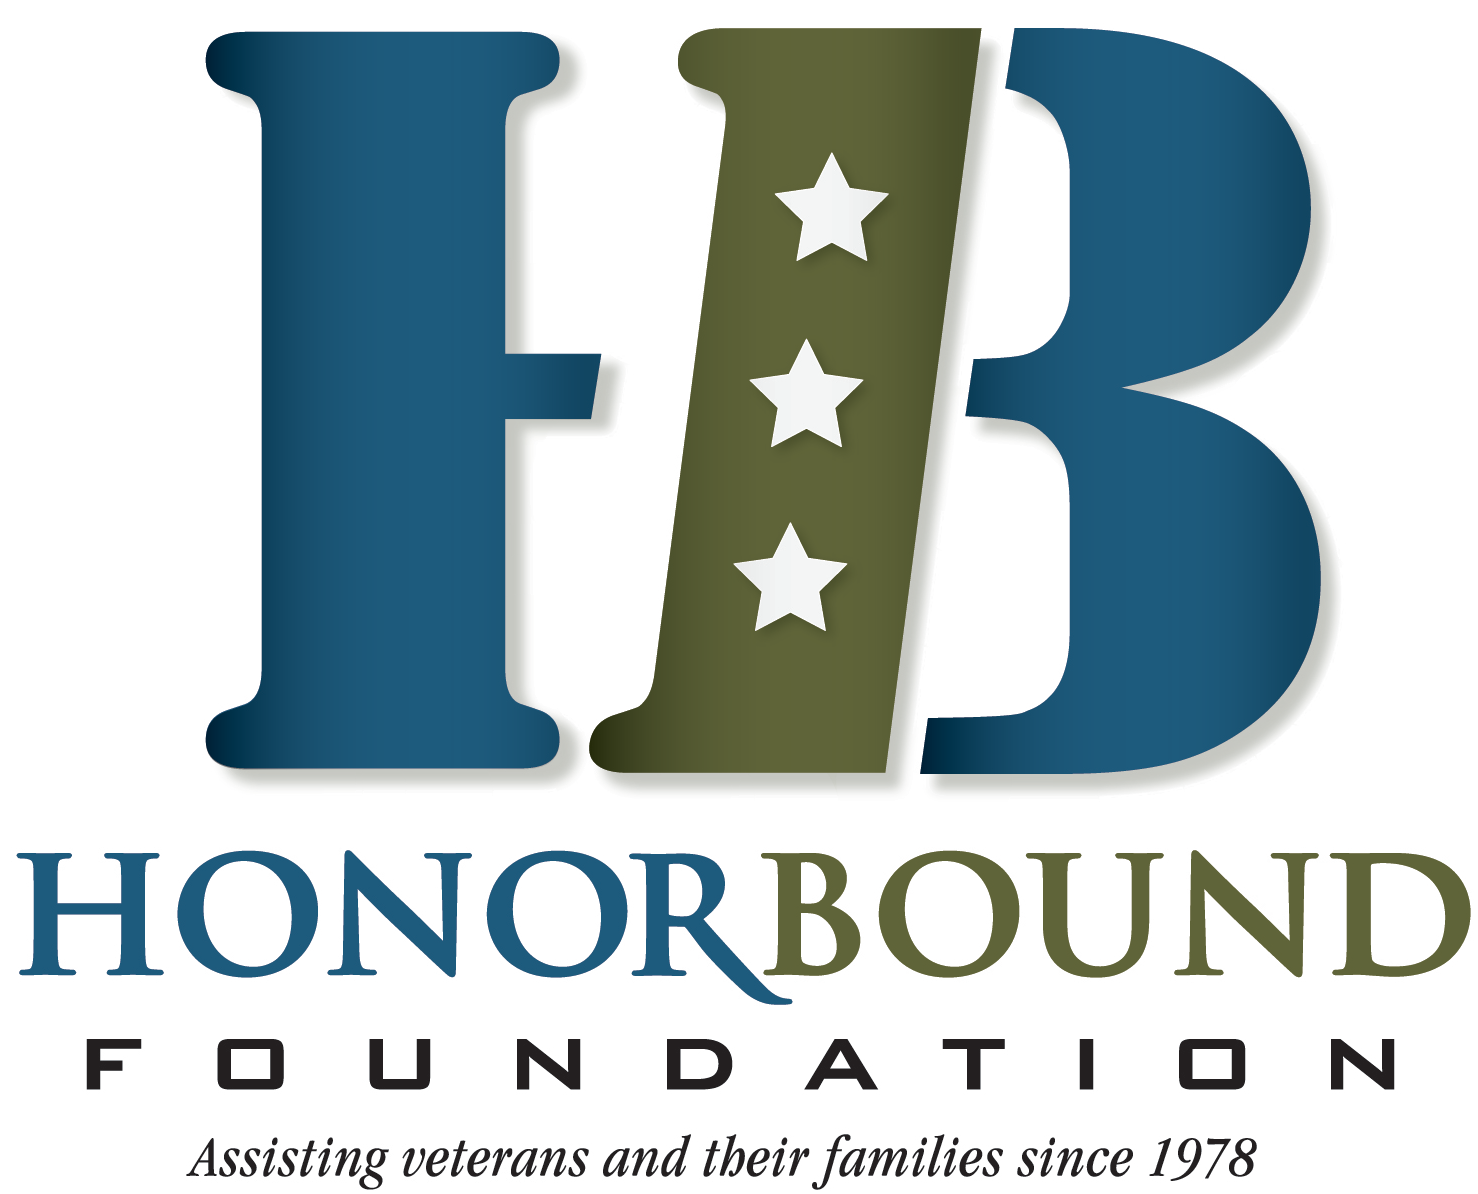 Charity - HonorBound Foundation - Donateacar.com